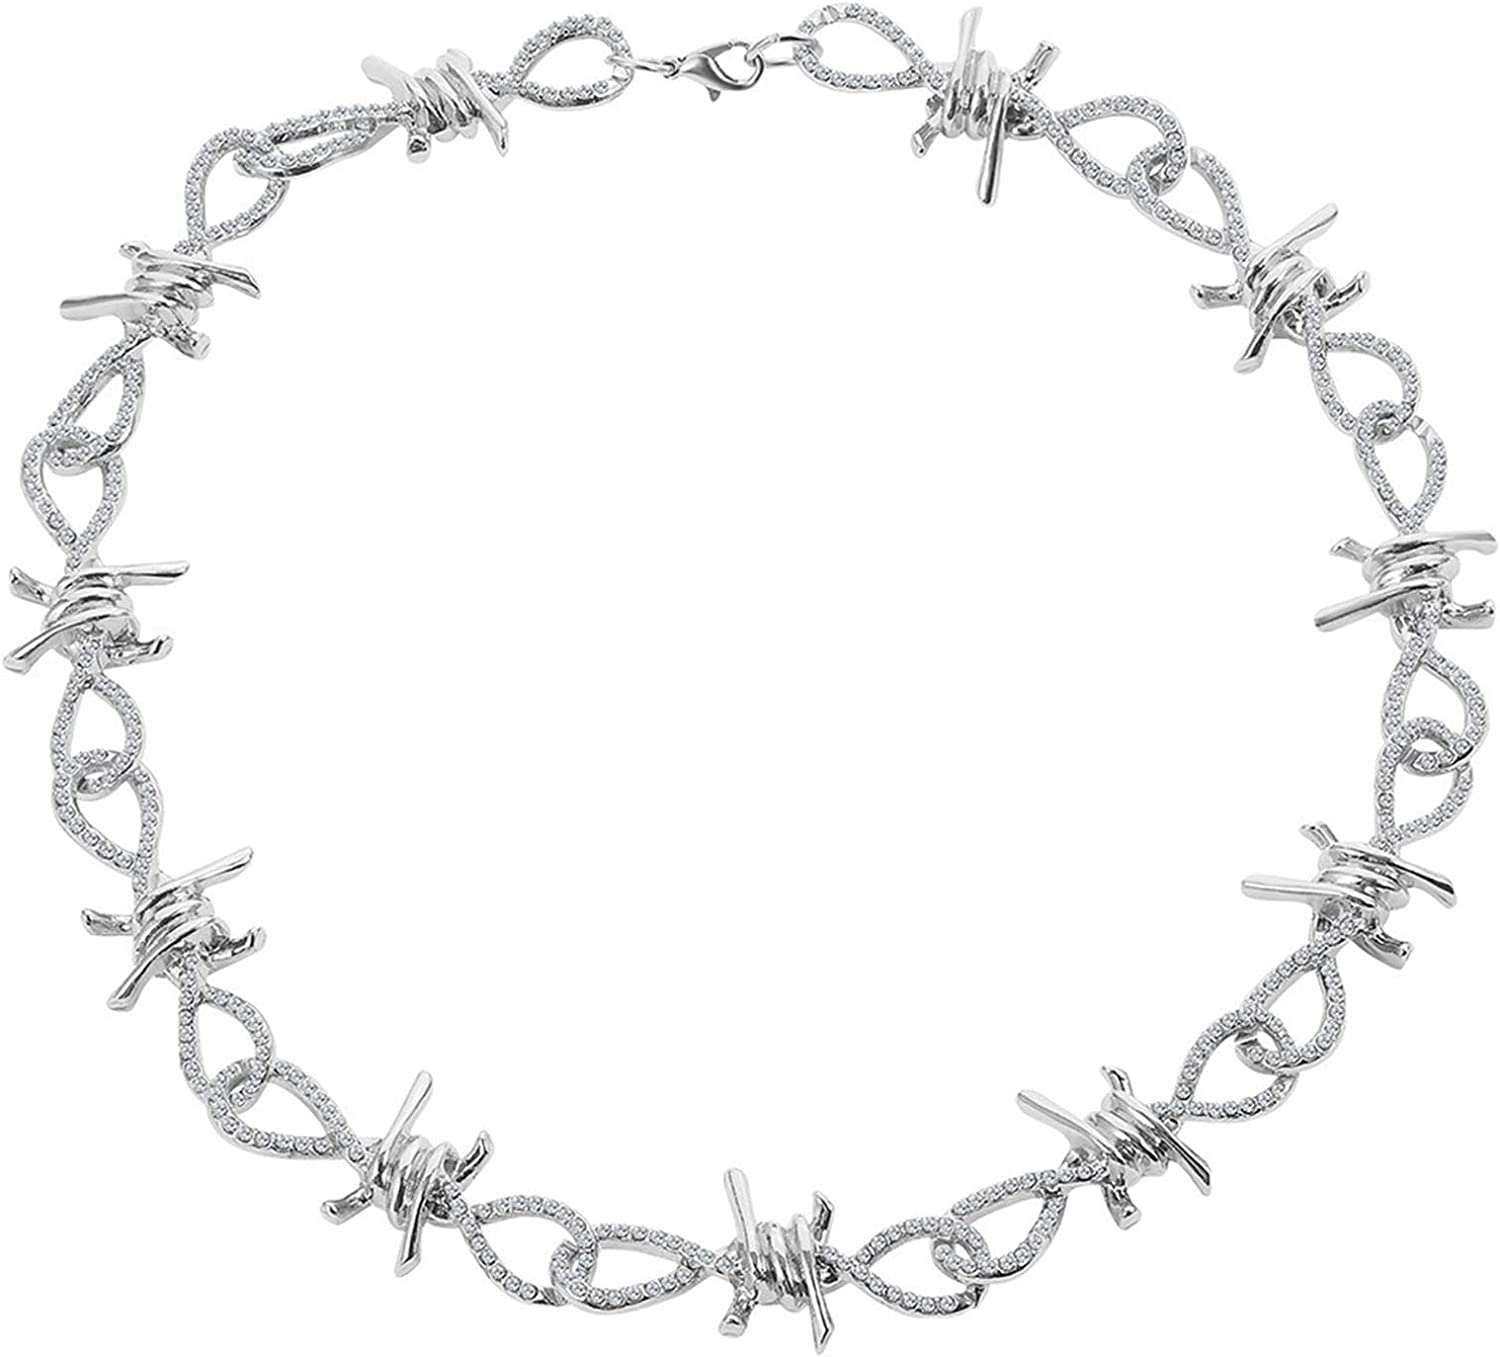 COLORFUL BLING Gothic Barbed Wire Necklace Crystal Metal Thorns Choker Necklace Metal Chain Safety Rock Hip Hop Rock Spur Link Necklace Punk Hiphop Rock Jewelry